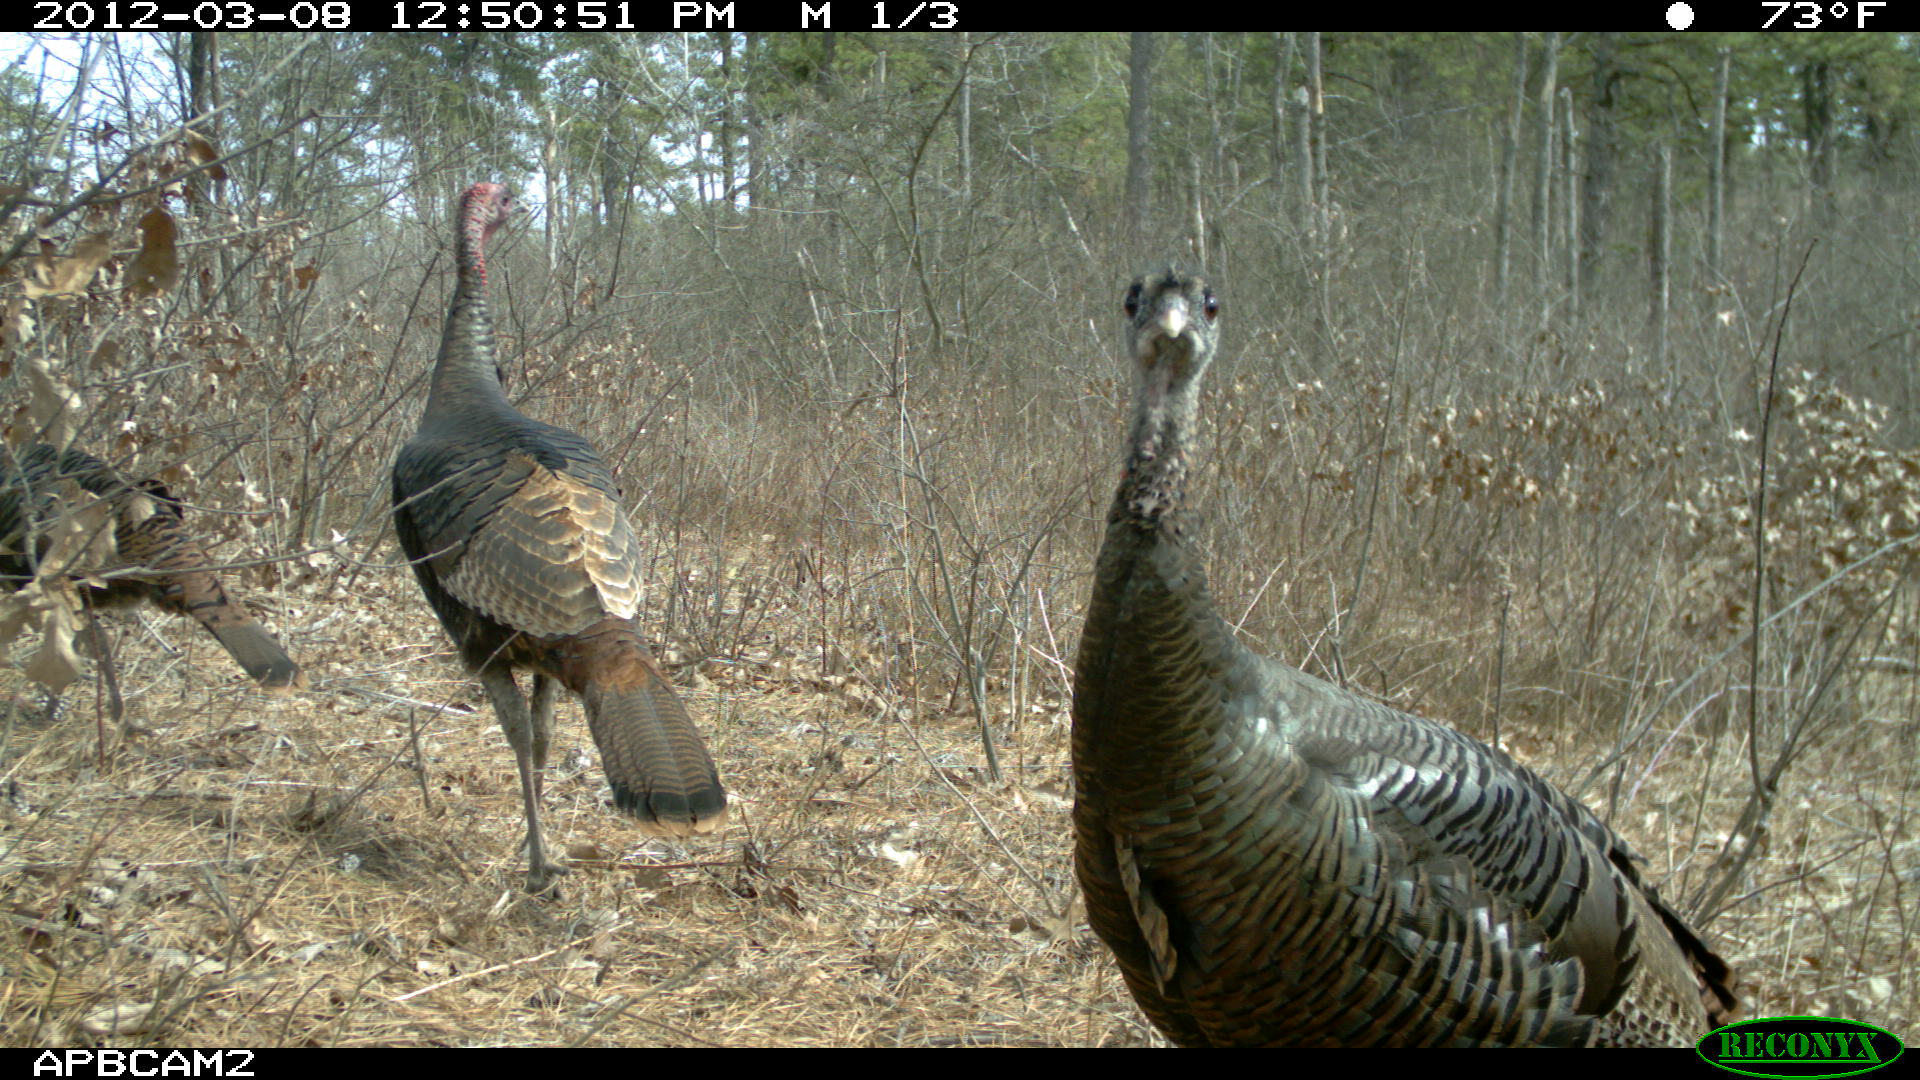 Trail camera image of wild turkeys. Two are walking away from the camera and one is staring at the camera.